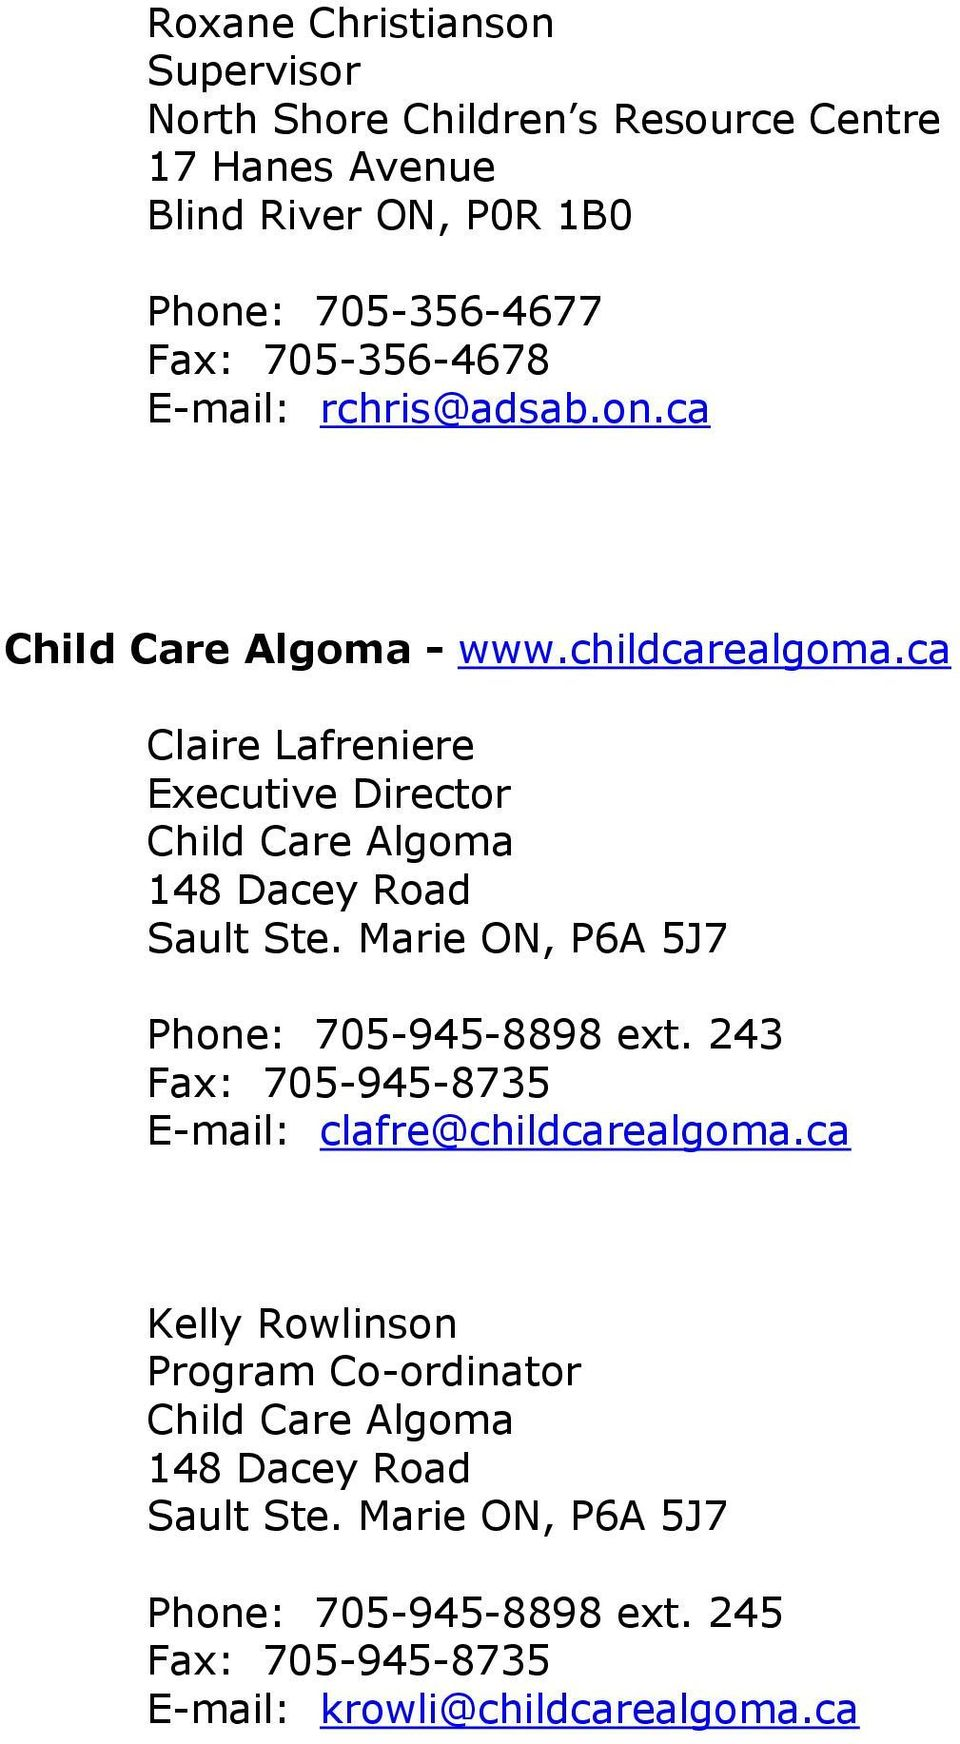 ca Claire Lafreniere Executive Director Child Care Algoma 148 Dacey Road Sault Ste. Marie ON, P6A 5J7 Phone: 705-945-8898 ext.